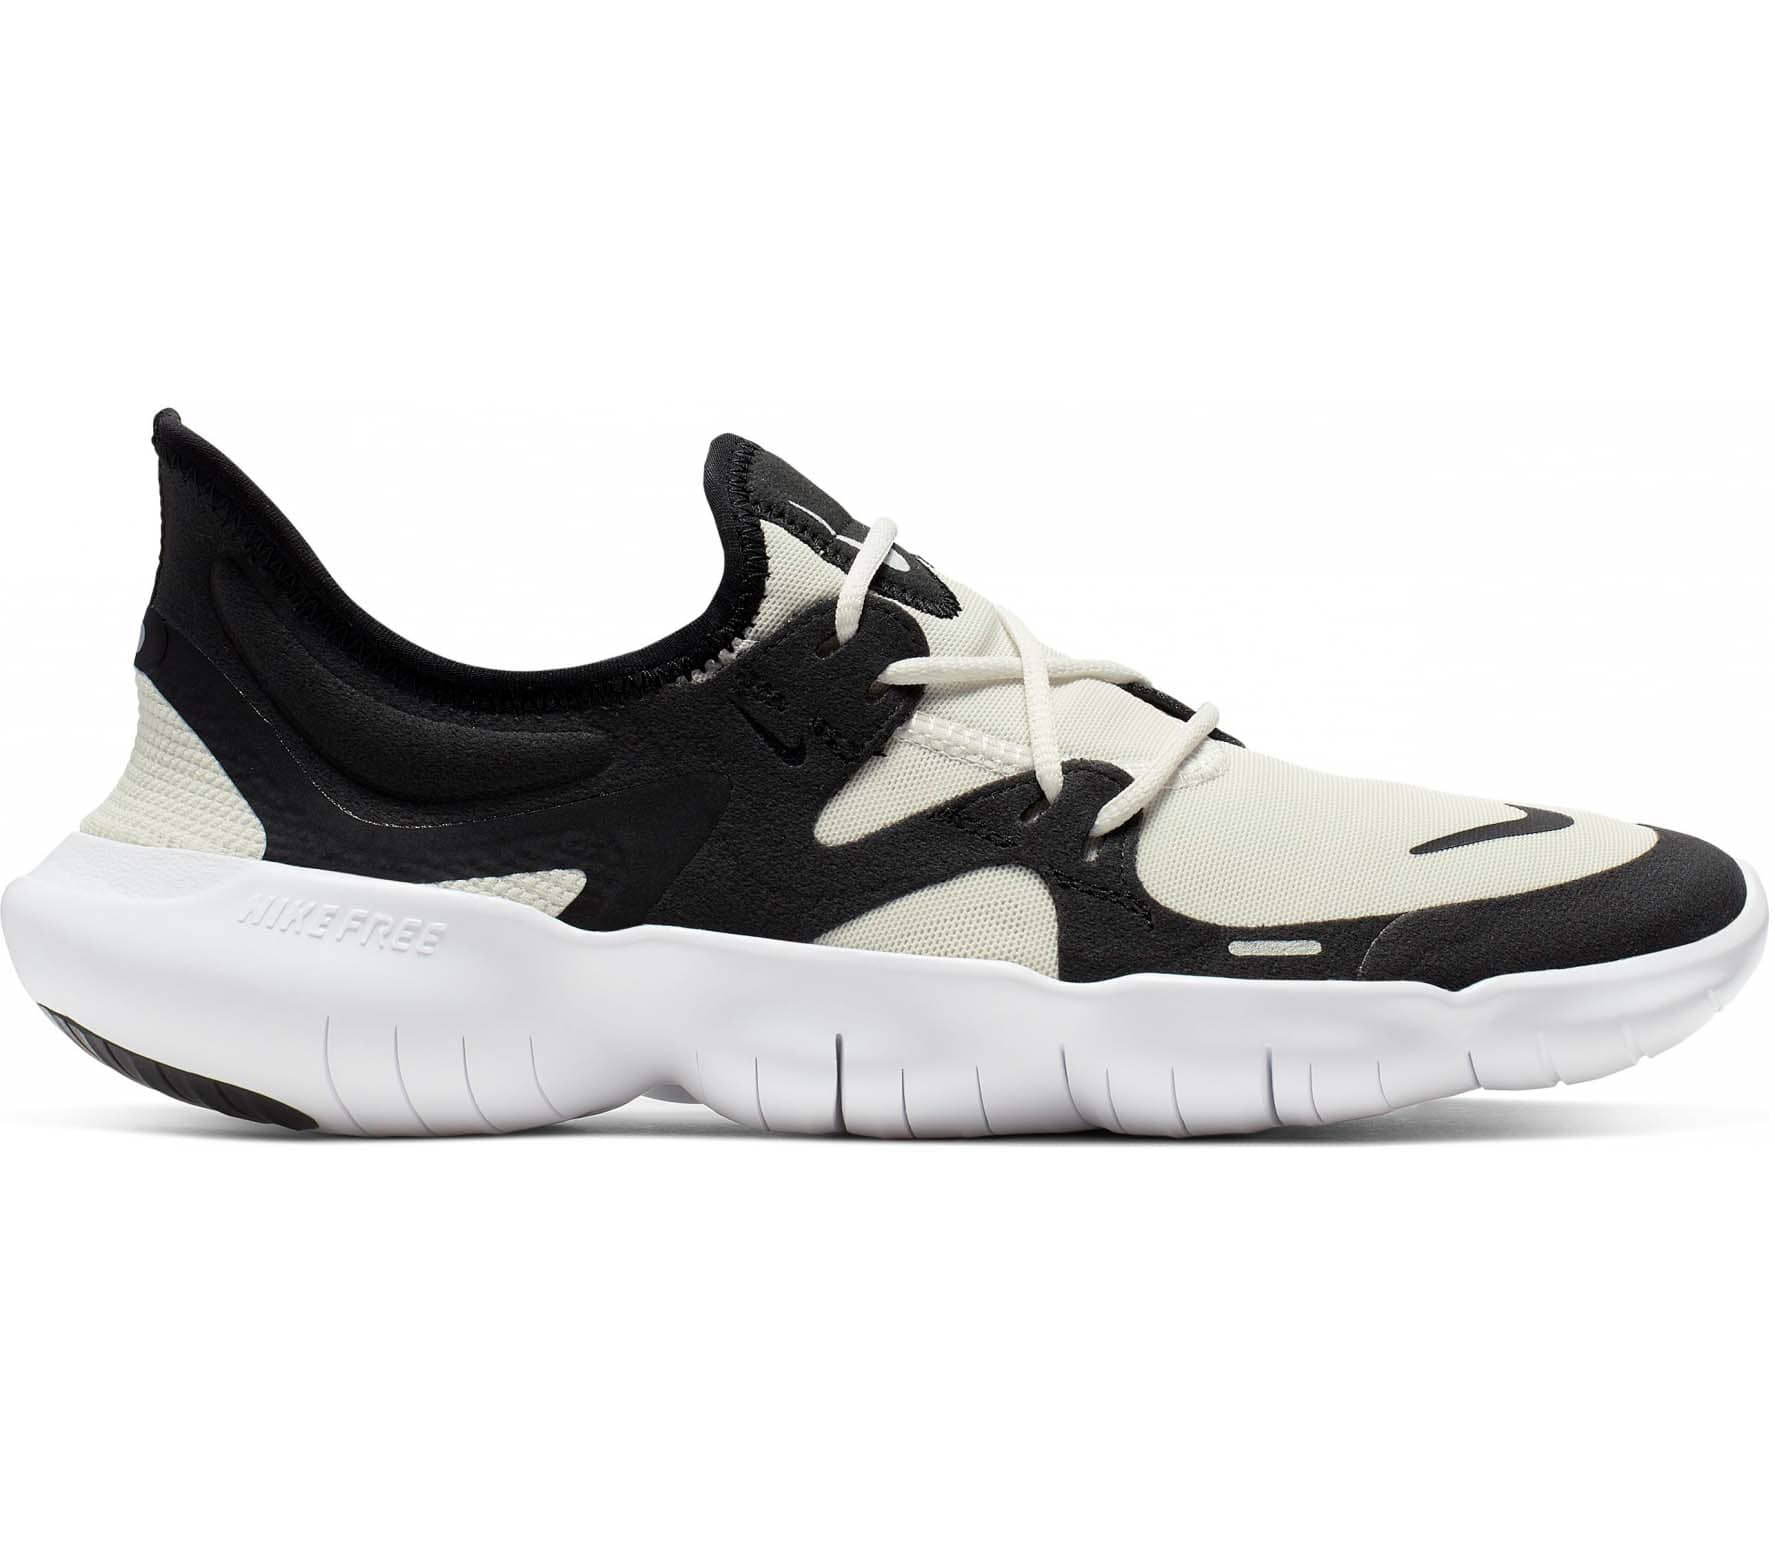 lowest price 2559d 12d7d Nike Free RN 5.0 Women Running Shoes white